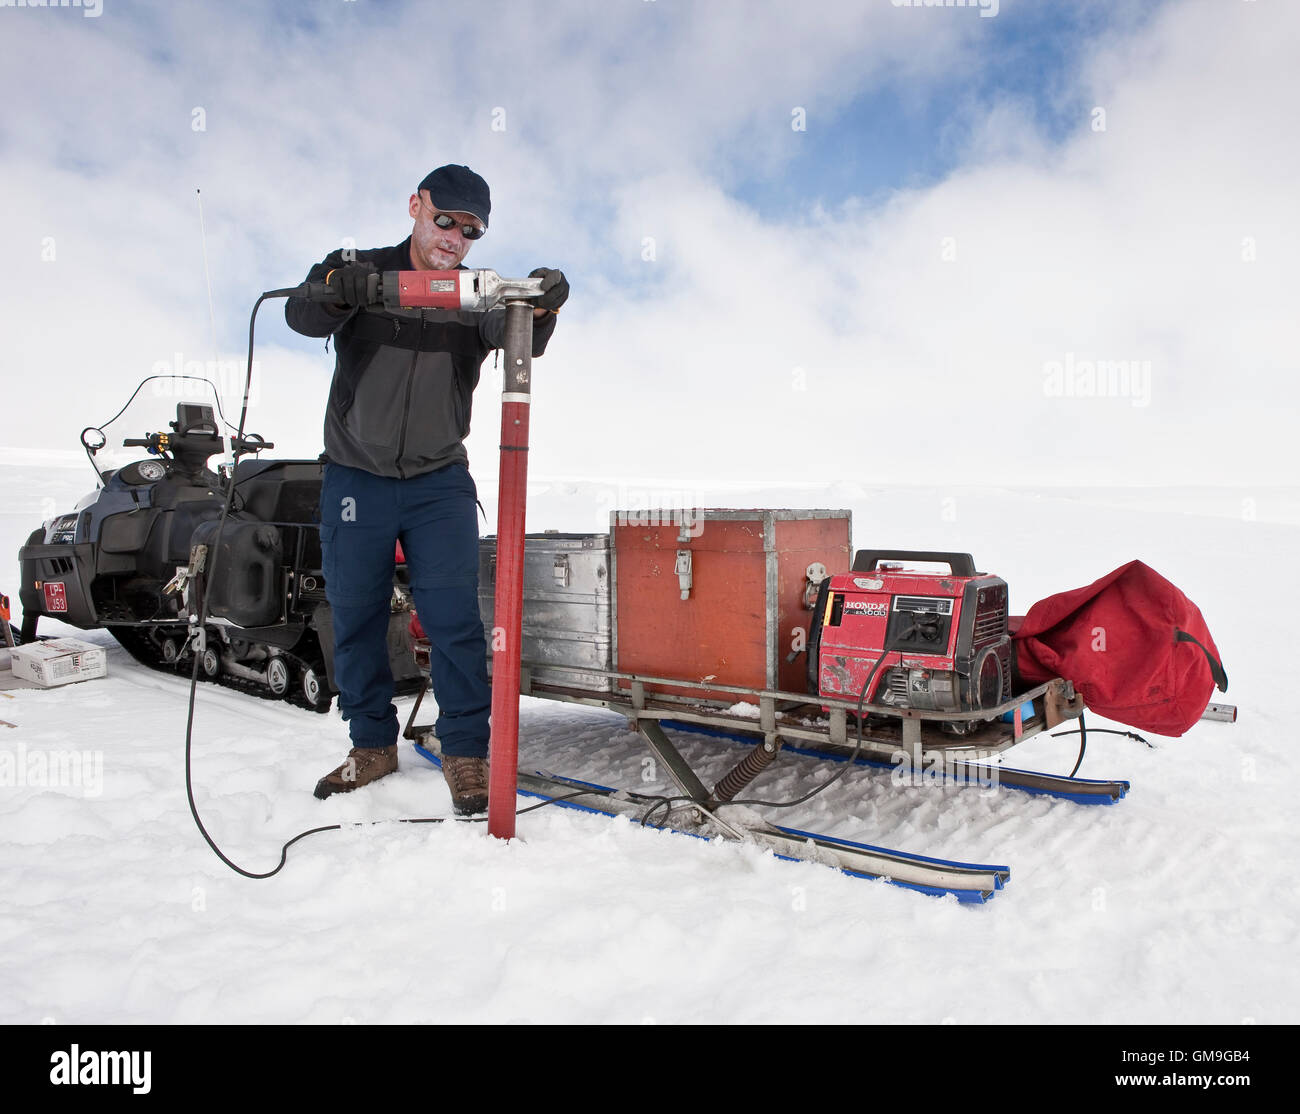 Scientist with ice core samples doing glacial research on Vatnajokull Ice Cap, Iceland - Stock Image